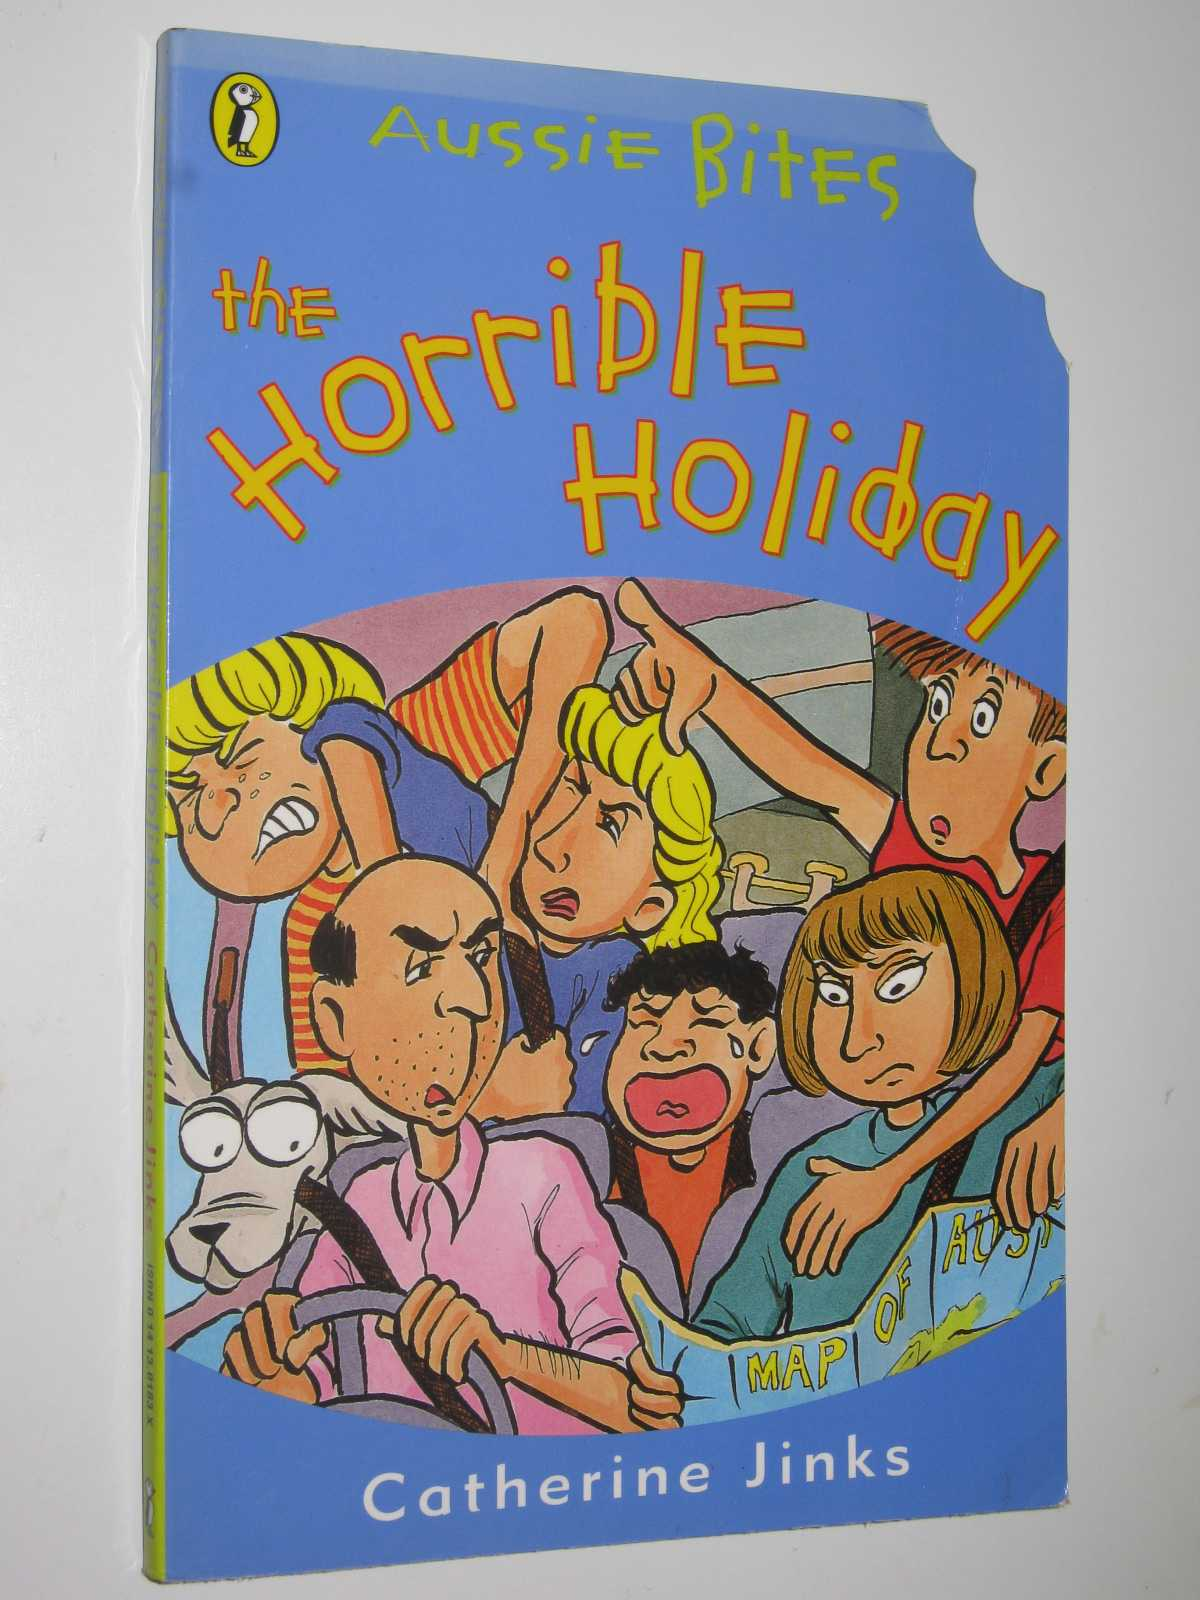 Image for The Horrible Holiday - Aussie Bites Series